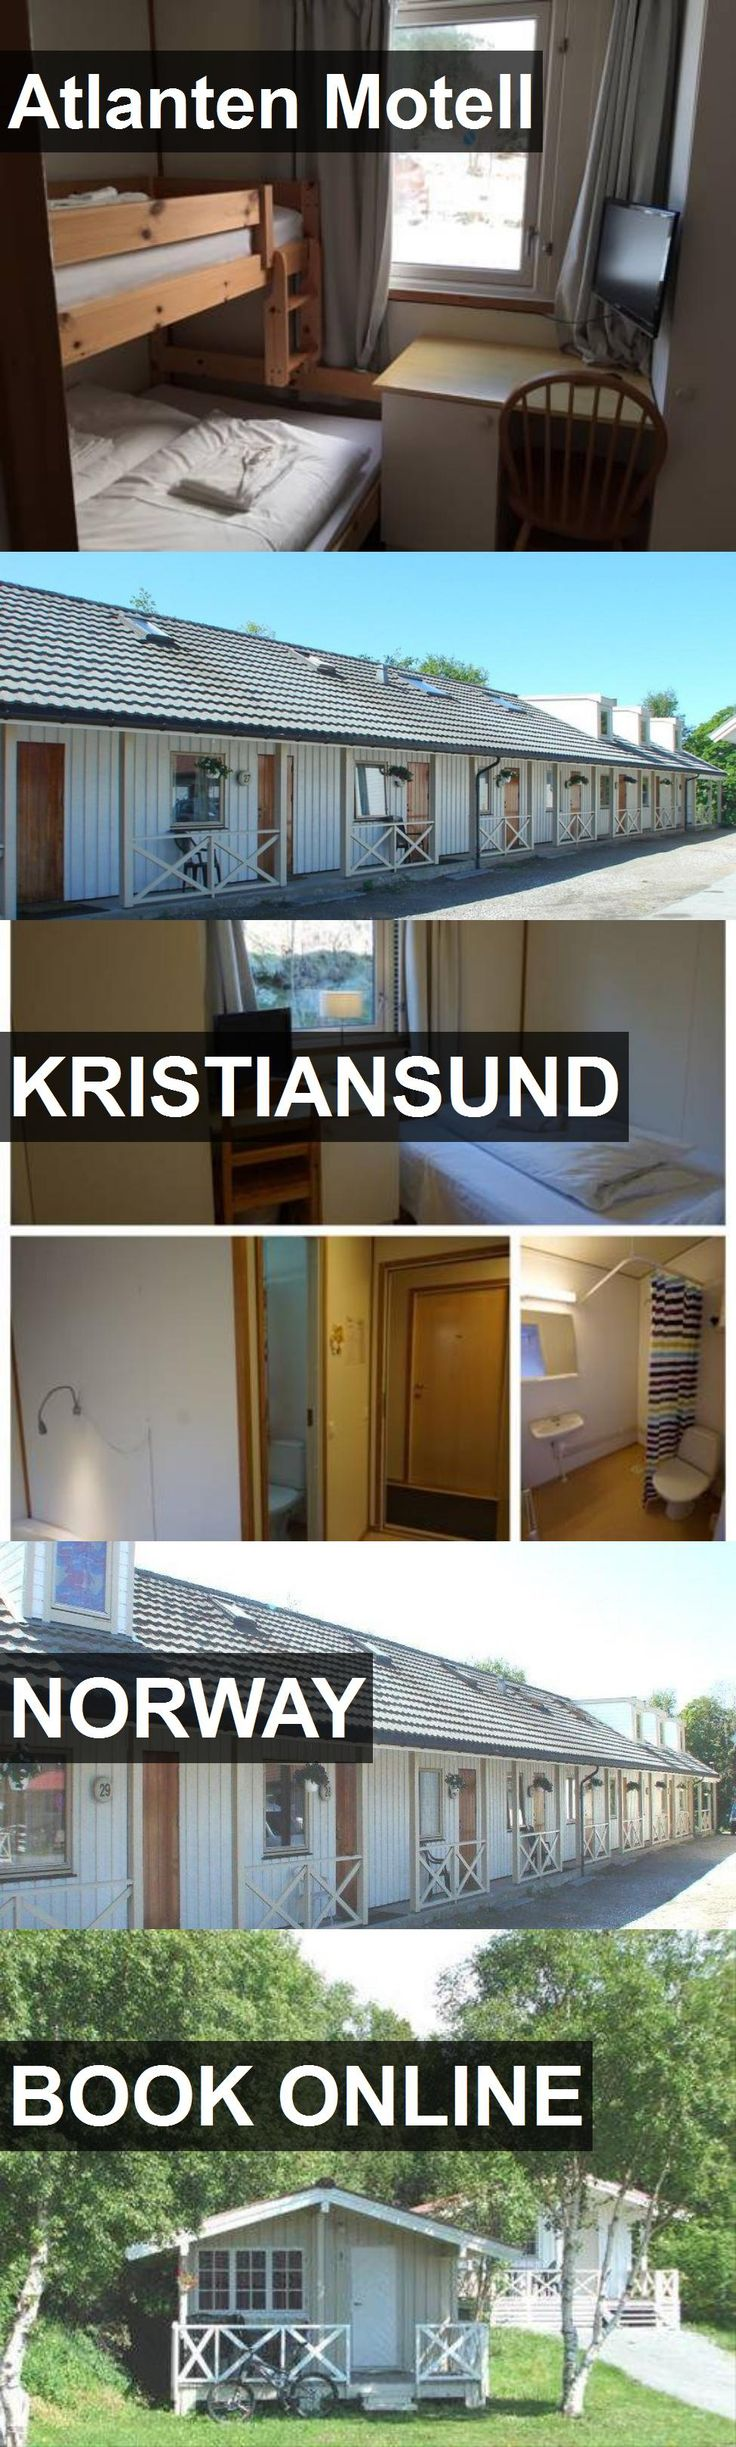 Hotel Atlanten Motell in Kristiansund, Norway. For more information, photos, reviews and best prices please follow the link. #Norway #Kristiansund #travel #vacation #hotel